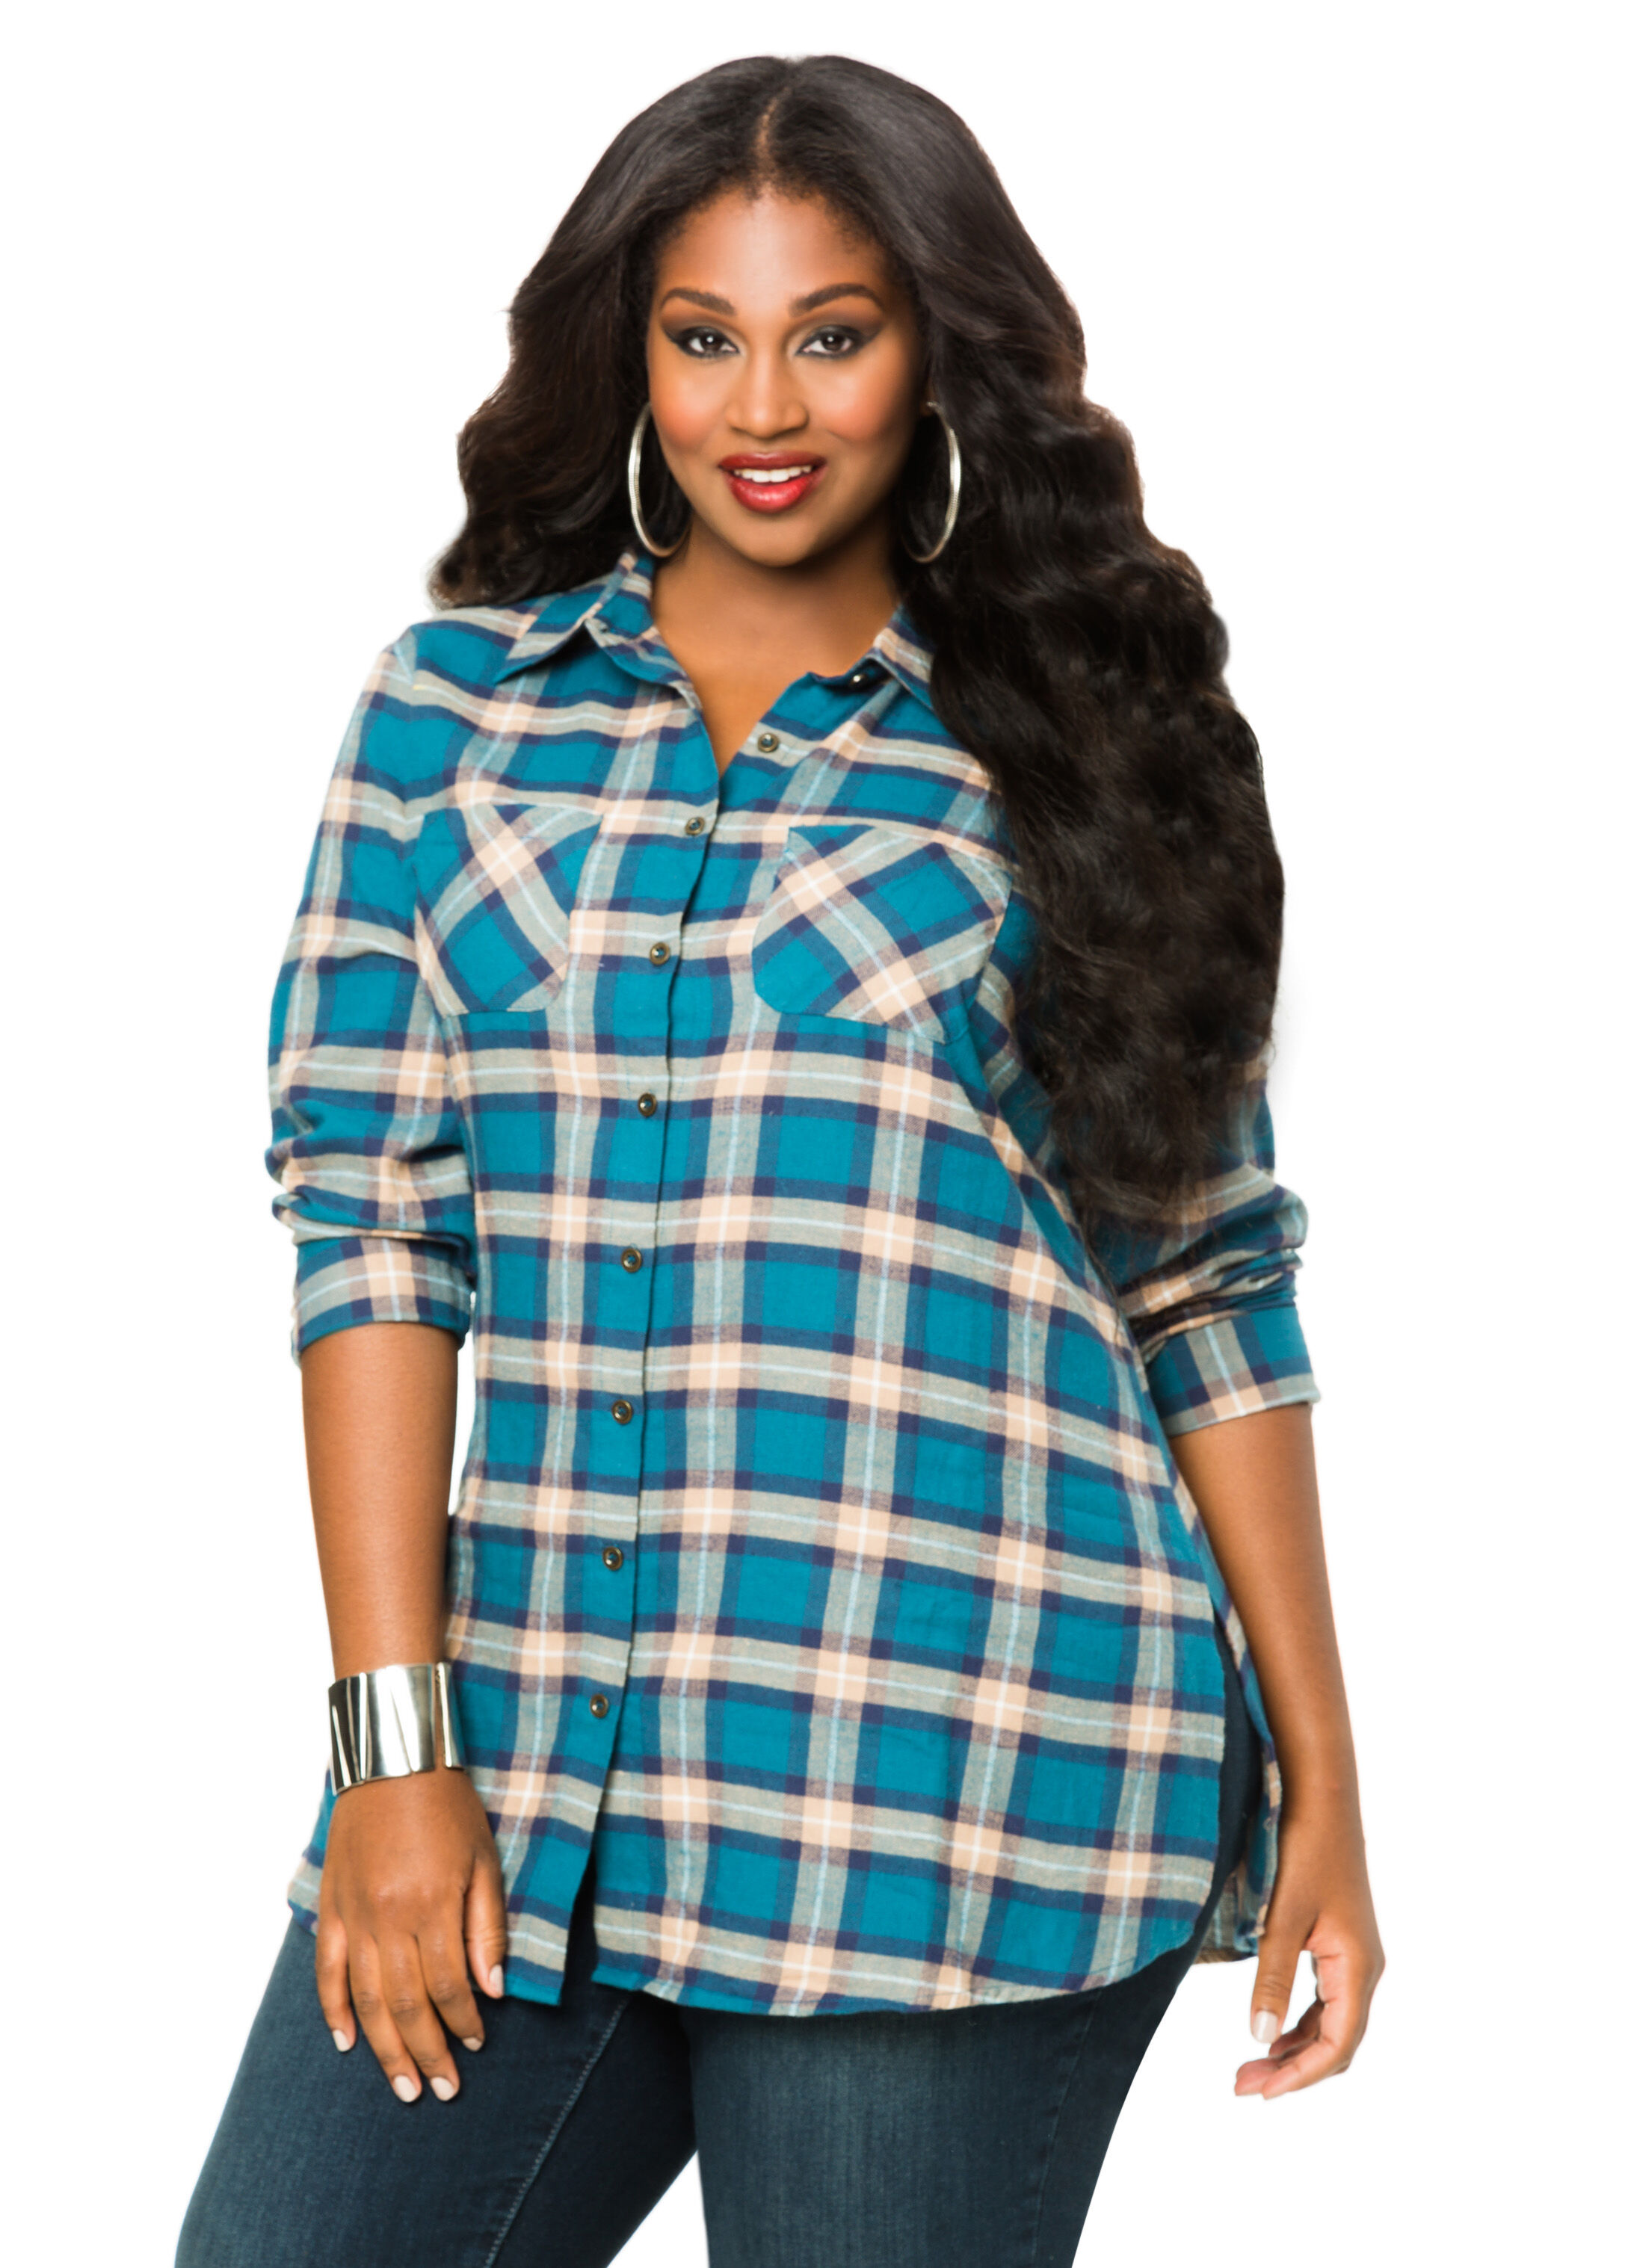 Women's Plus Plaid Flannel Tunic by Blair, Size 2XL. Long Collar Shirts & Tops by Blair. Comes in Multi, Size 2XL. Our softest flannel joins classic plaid styling for a terrific value-priced top! Banded collar, button cuffs, shirttail hem. Approx. 30L.